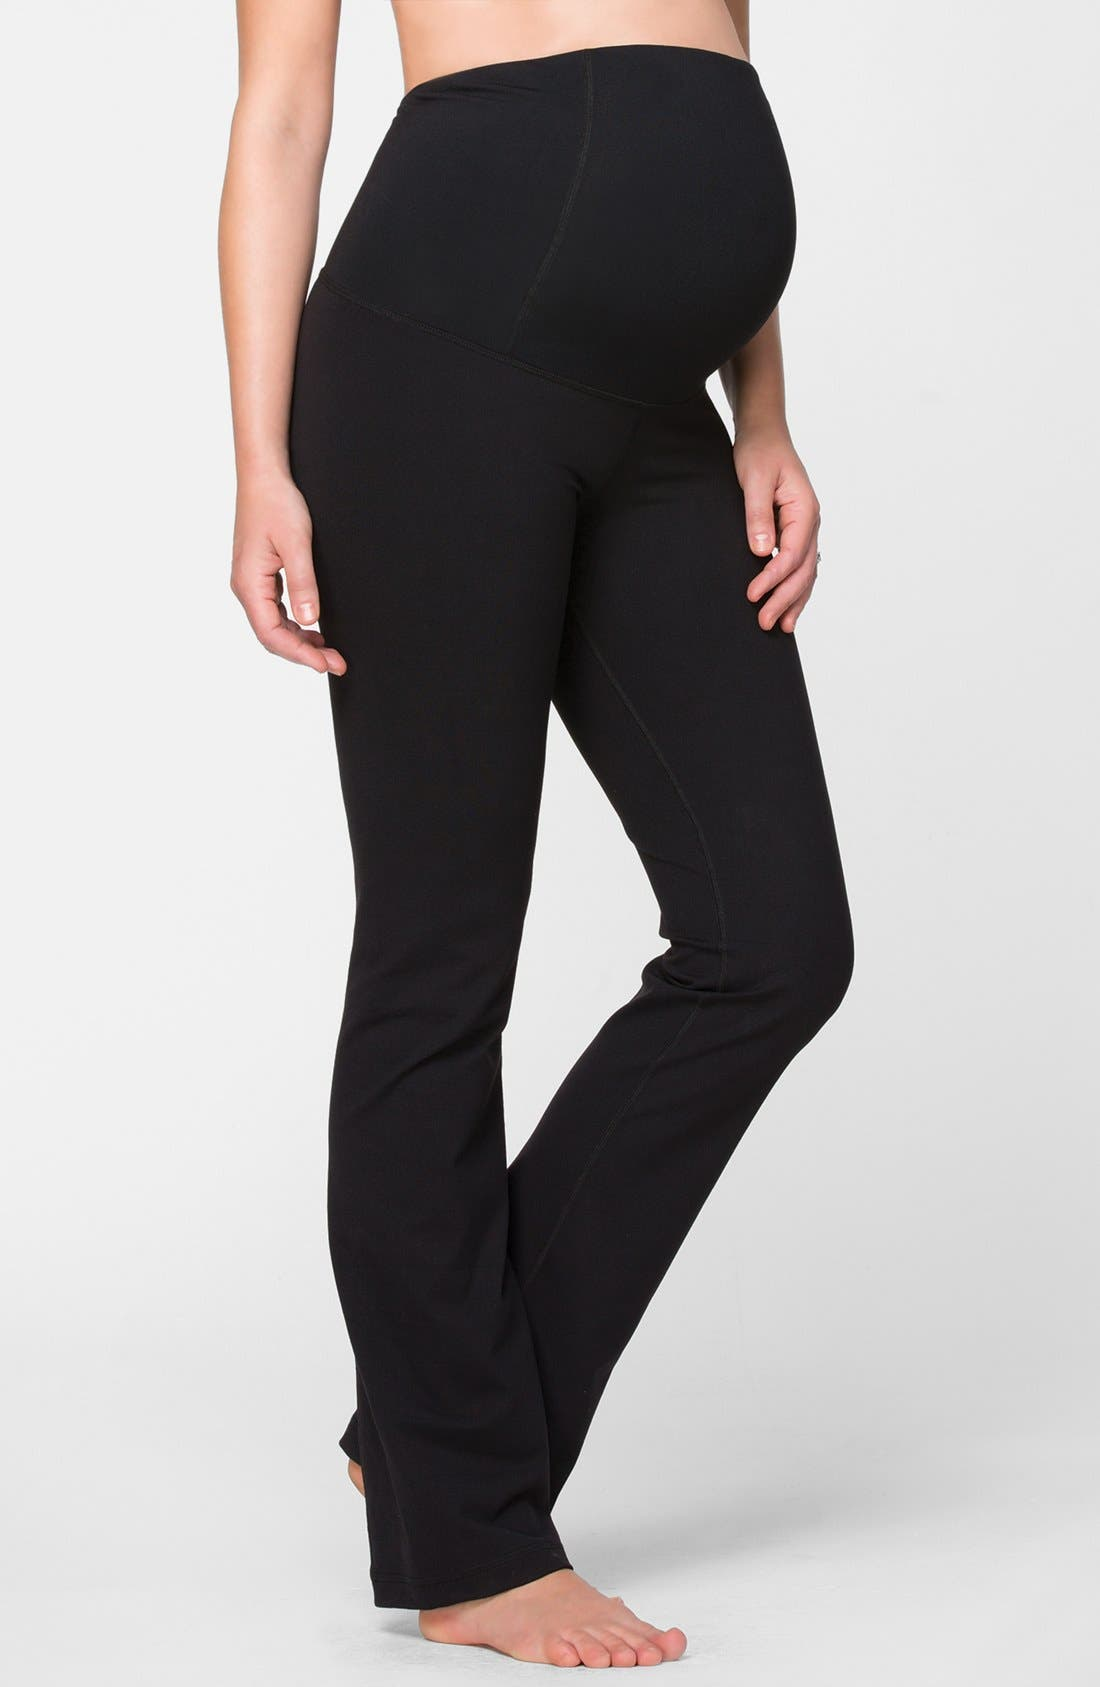 Main Image - Ingrid & Isabel® Active Maternity Pants with Crossover Panel